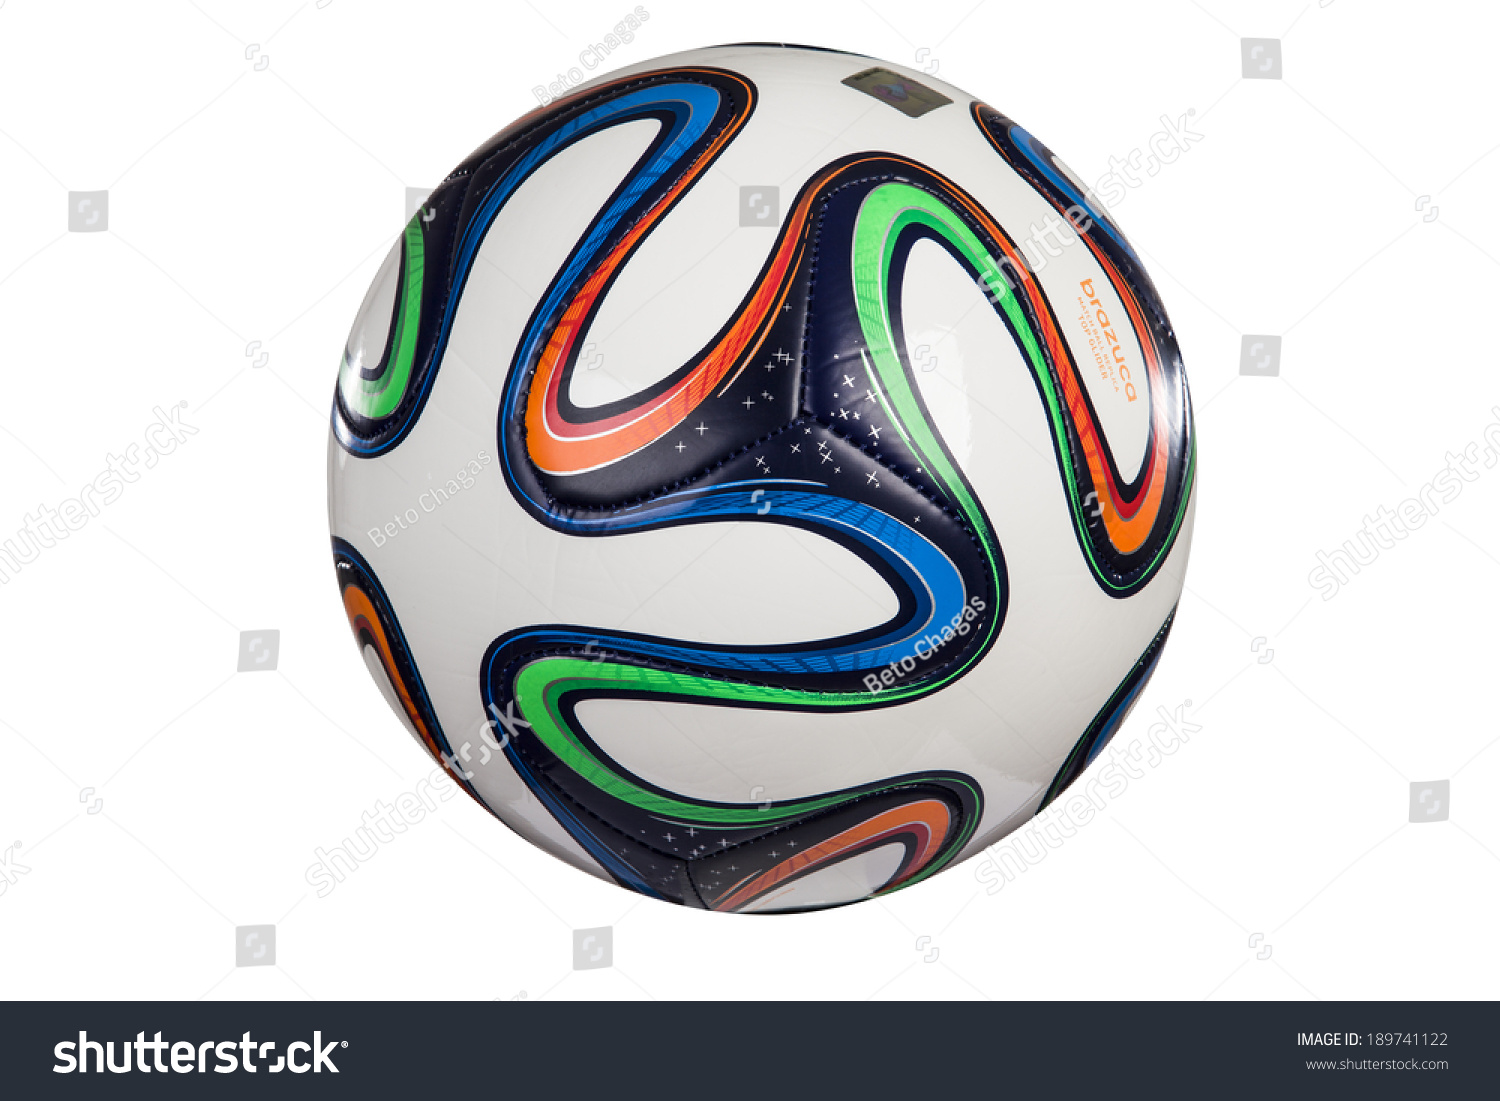 essay football world cup Sports term papers (paper 11530) on history of soccer: soccer is a popular sport played all over the world even though it has only been popular in north america for the past 30 years.